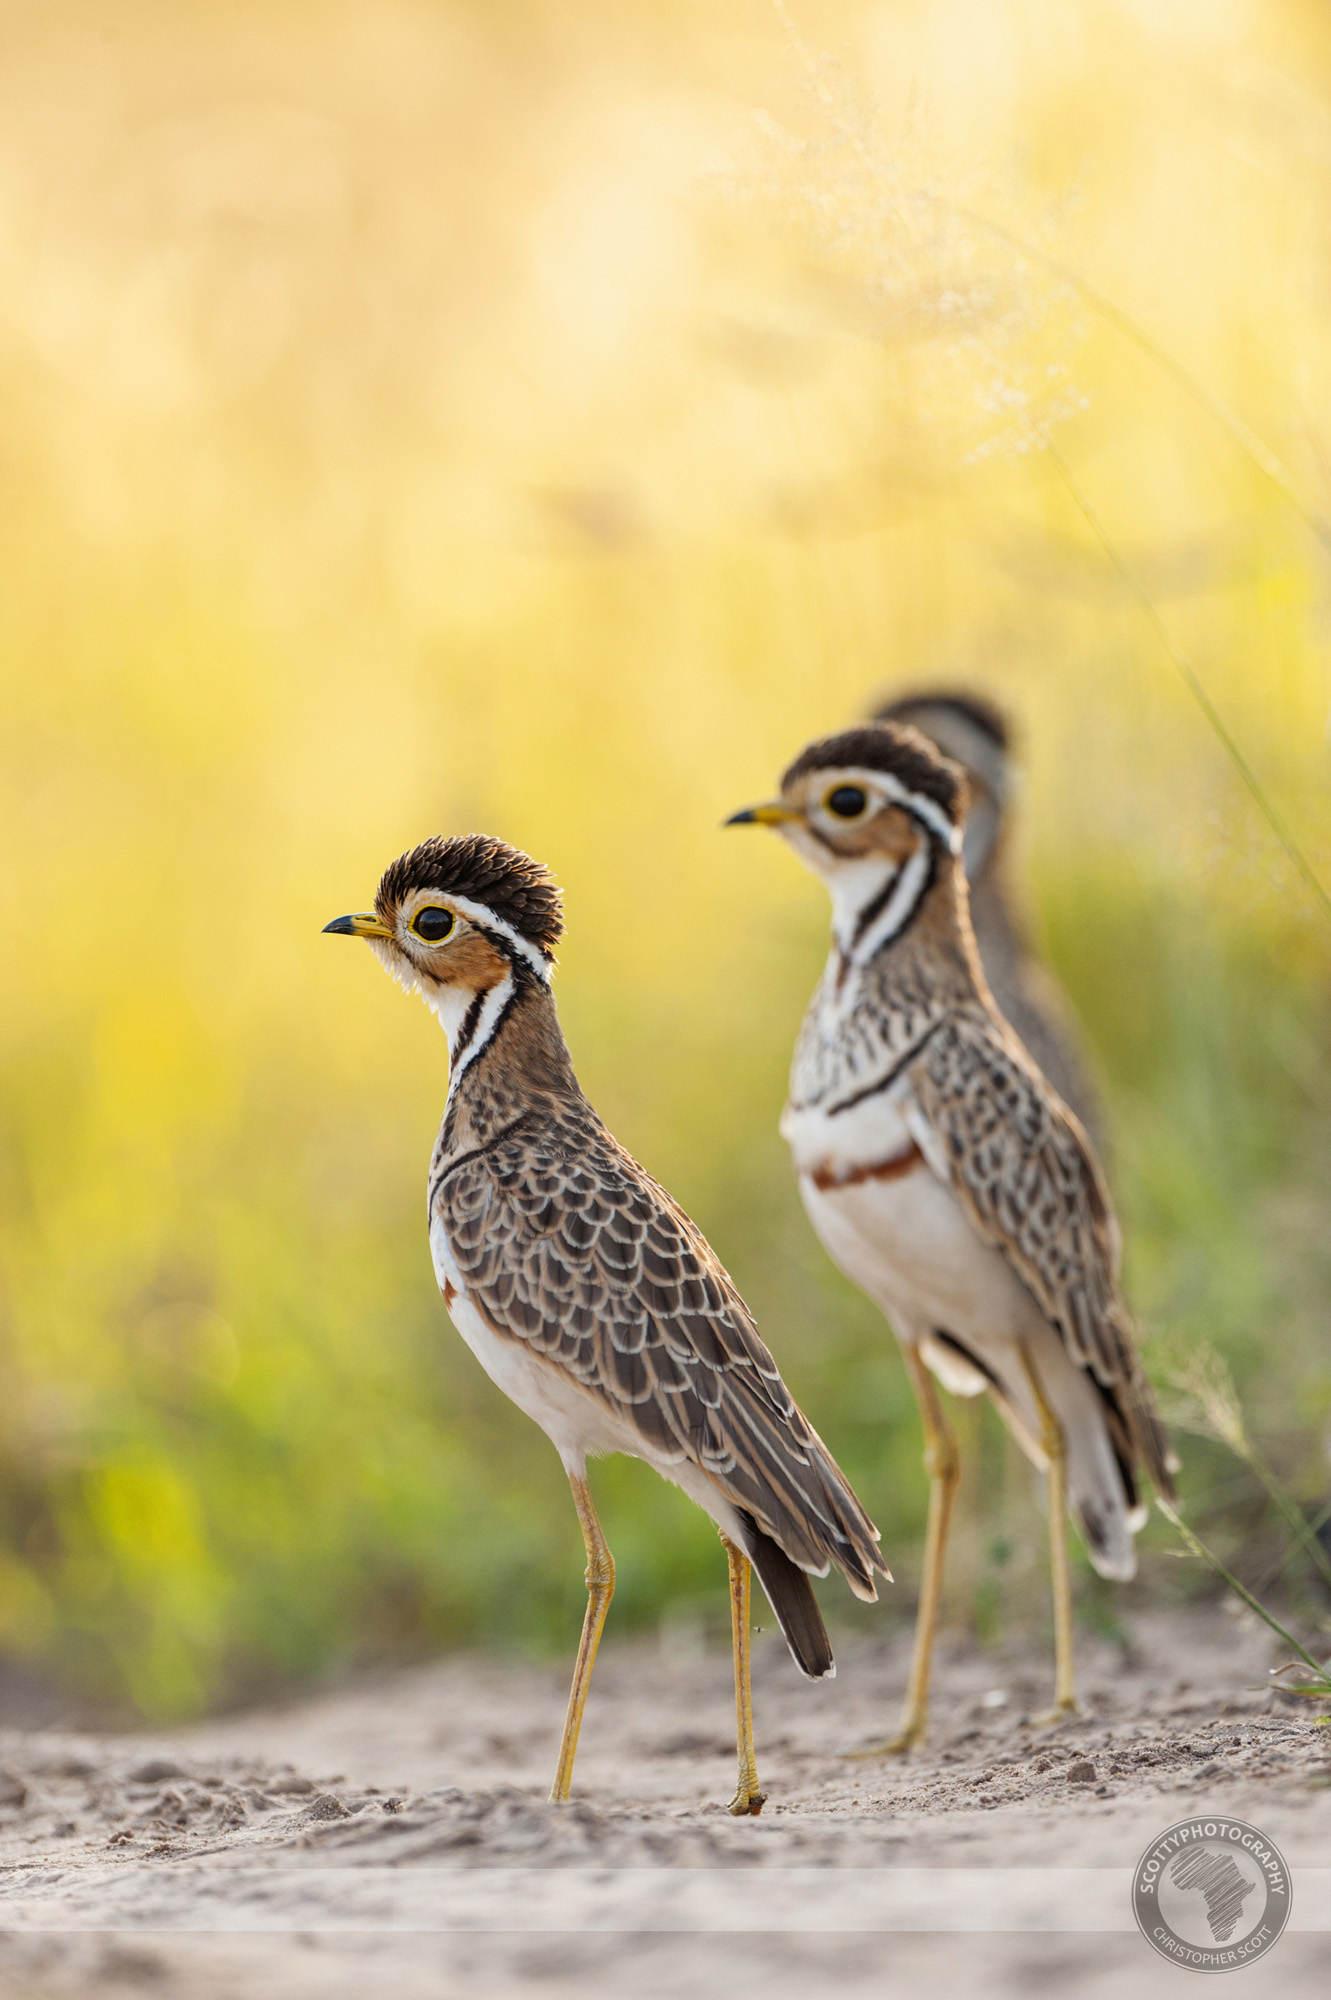 Courser, Thre Banded-60 copy.jpg